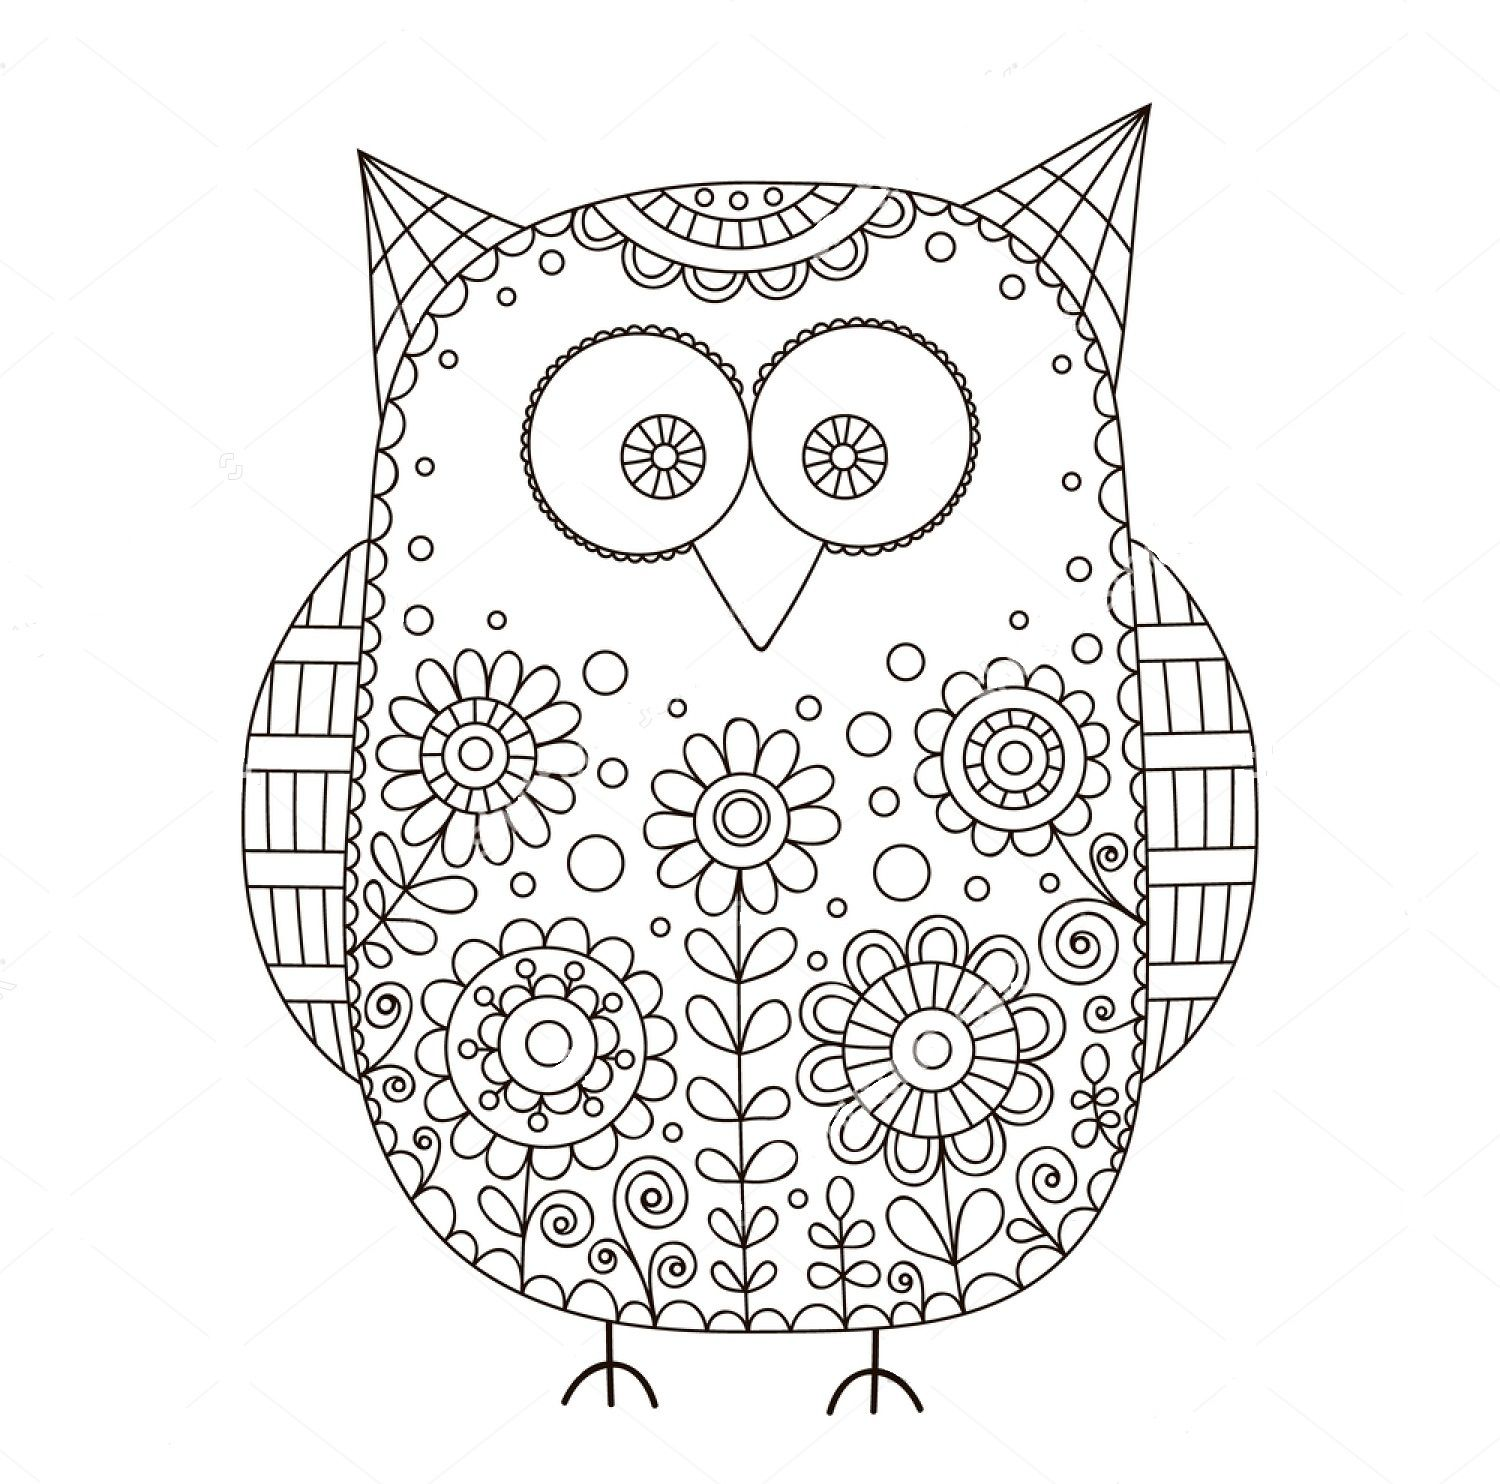 Owl Zentangle Coloring Page Owl Coloring Pages How To Draw Hands Flower Doodles